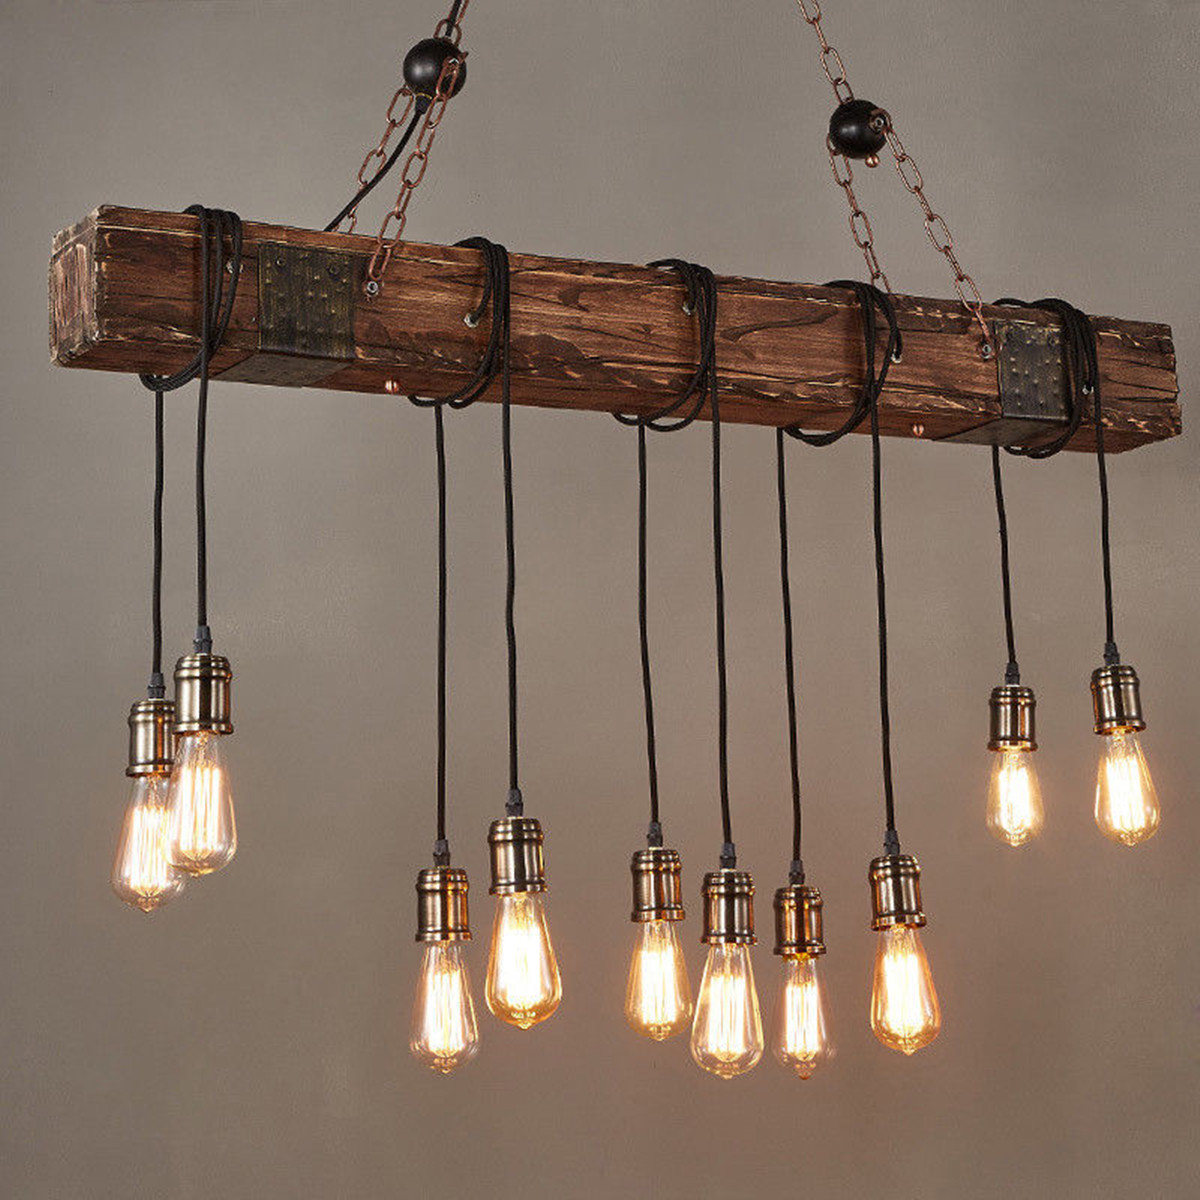 Hanging Antique Farmhouse Wood Beam Island With 10 Edison Bulb Home Kitchen Restaurant Decorations